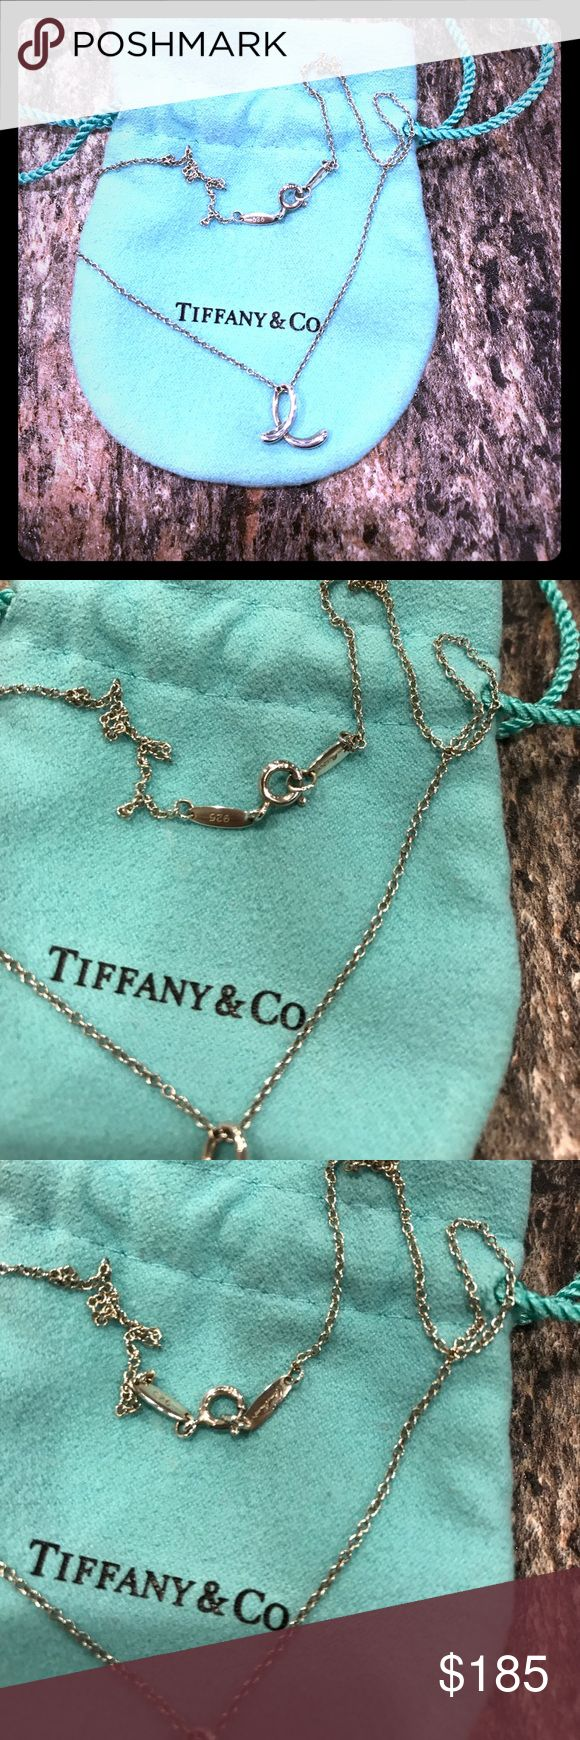 "🎈SALE🎈Tiffany and Co ""E"" Initial Necklace Authentic Tiffany & Co lower case Elsa Peretti design ""e"" initial necklace. Sterling silver with all hallmarks as shown above, including 925, Tiffany & Co and Elsa Peretti. This necklace is in excellent condition, worn only a couple times. Still sold by Tiffany & Co in stores and online! Comes with original dust bag. Tiffany & Co. Jewelry Necklaces"